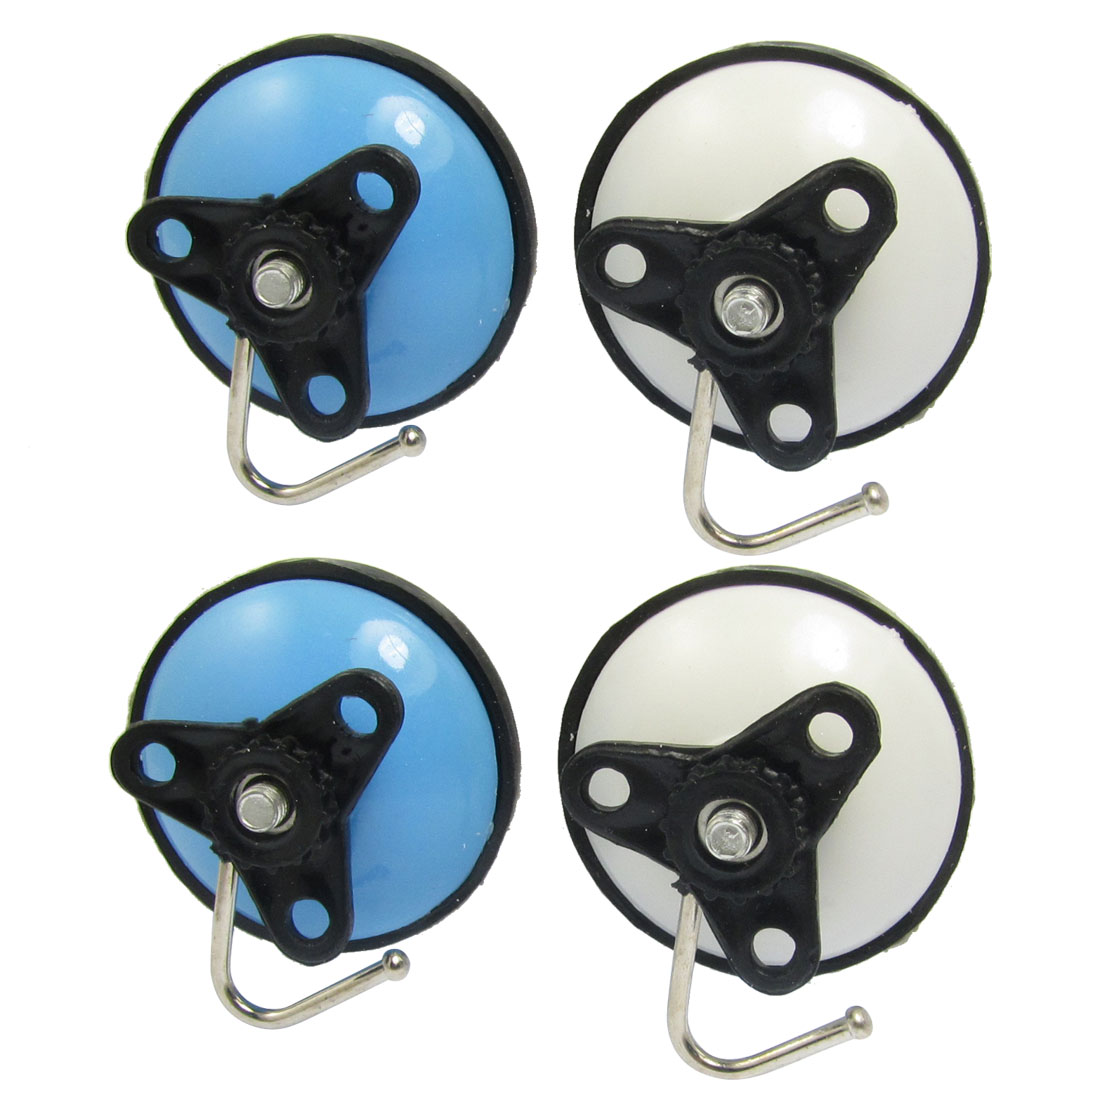 4 Pcs Blue White 55mm Dia Round Plastic Towel Suction Cup w Metal Hoop